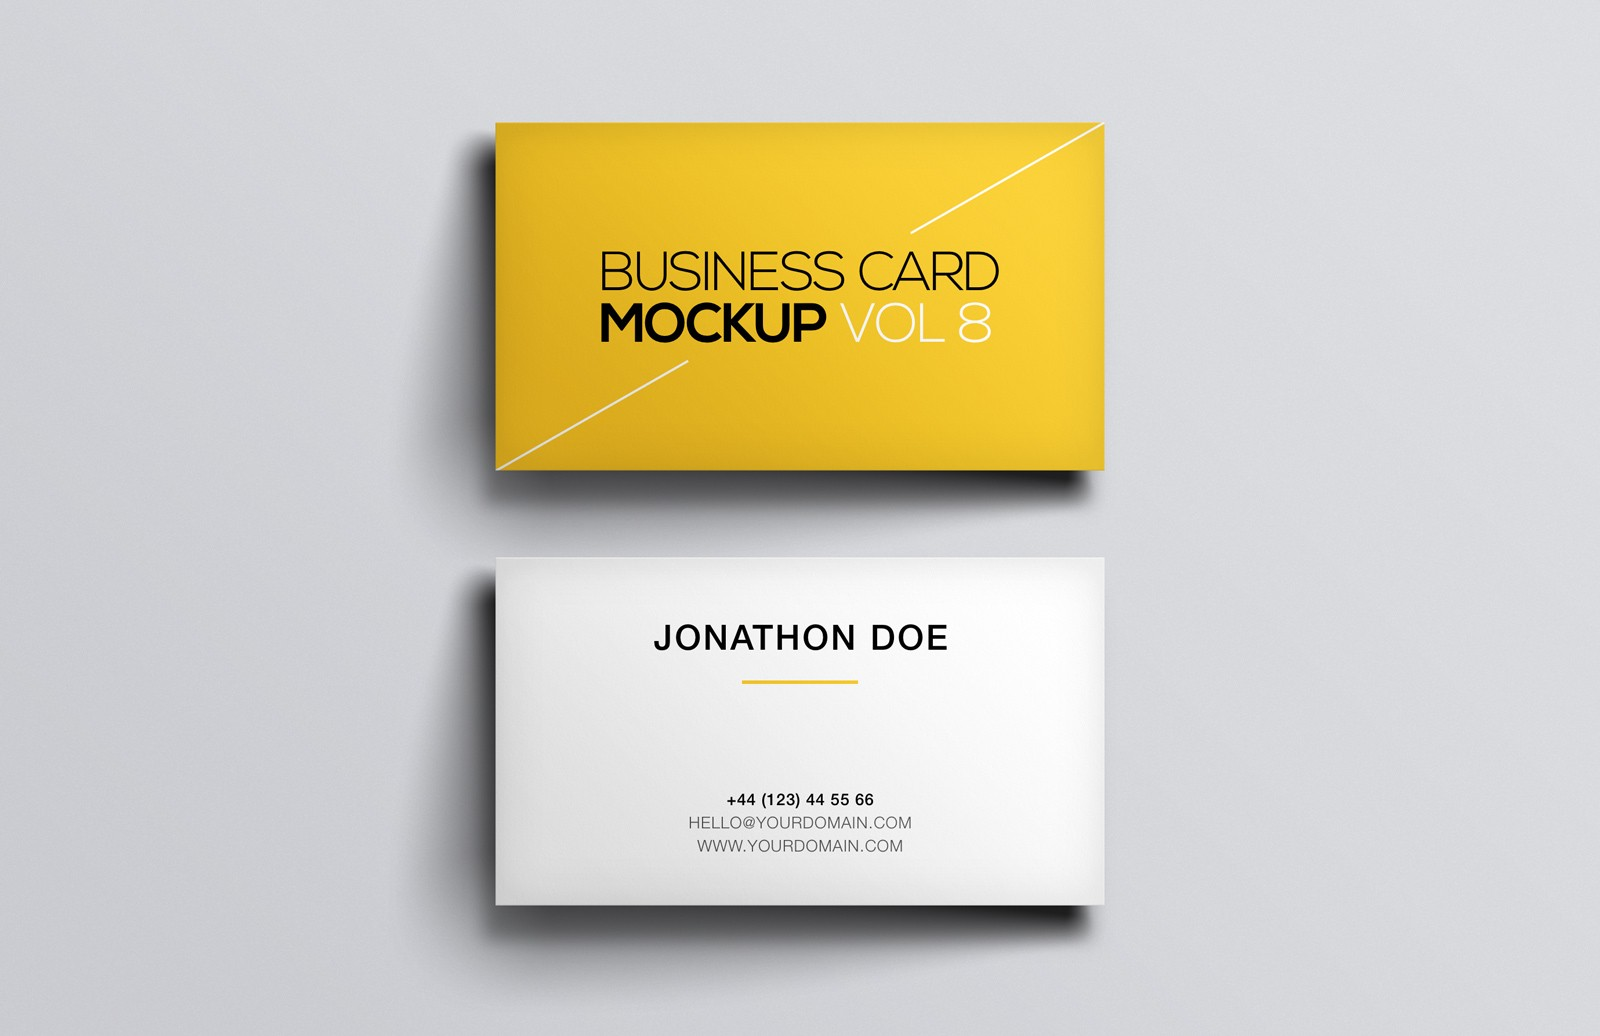 Business Card Mockup Vol 8 — Medialoot